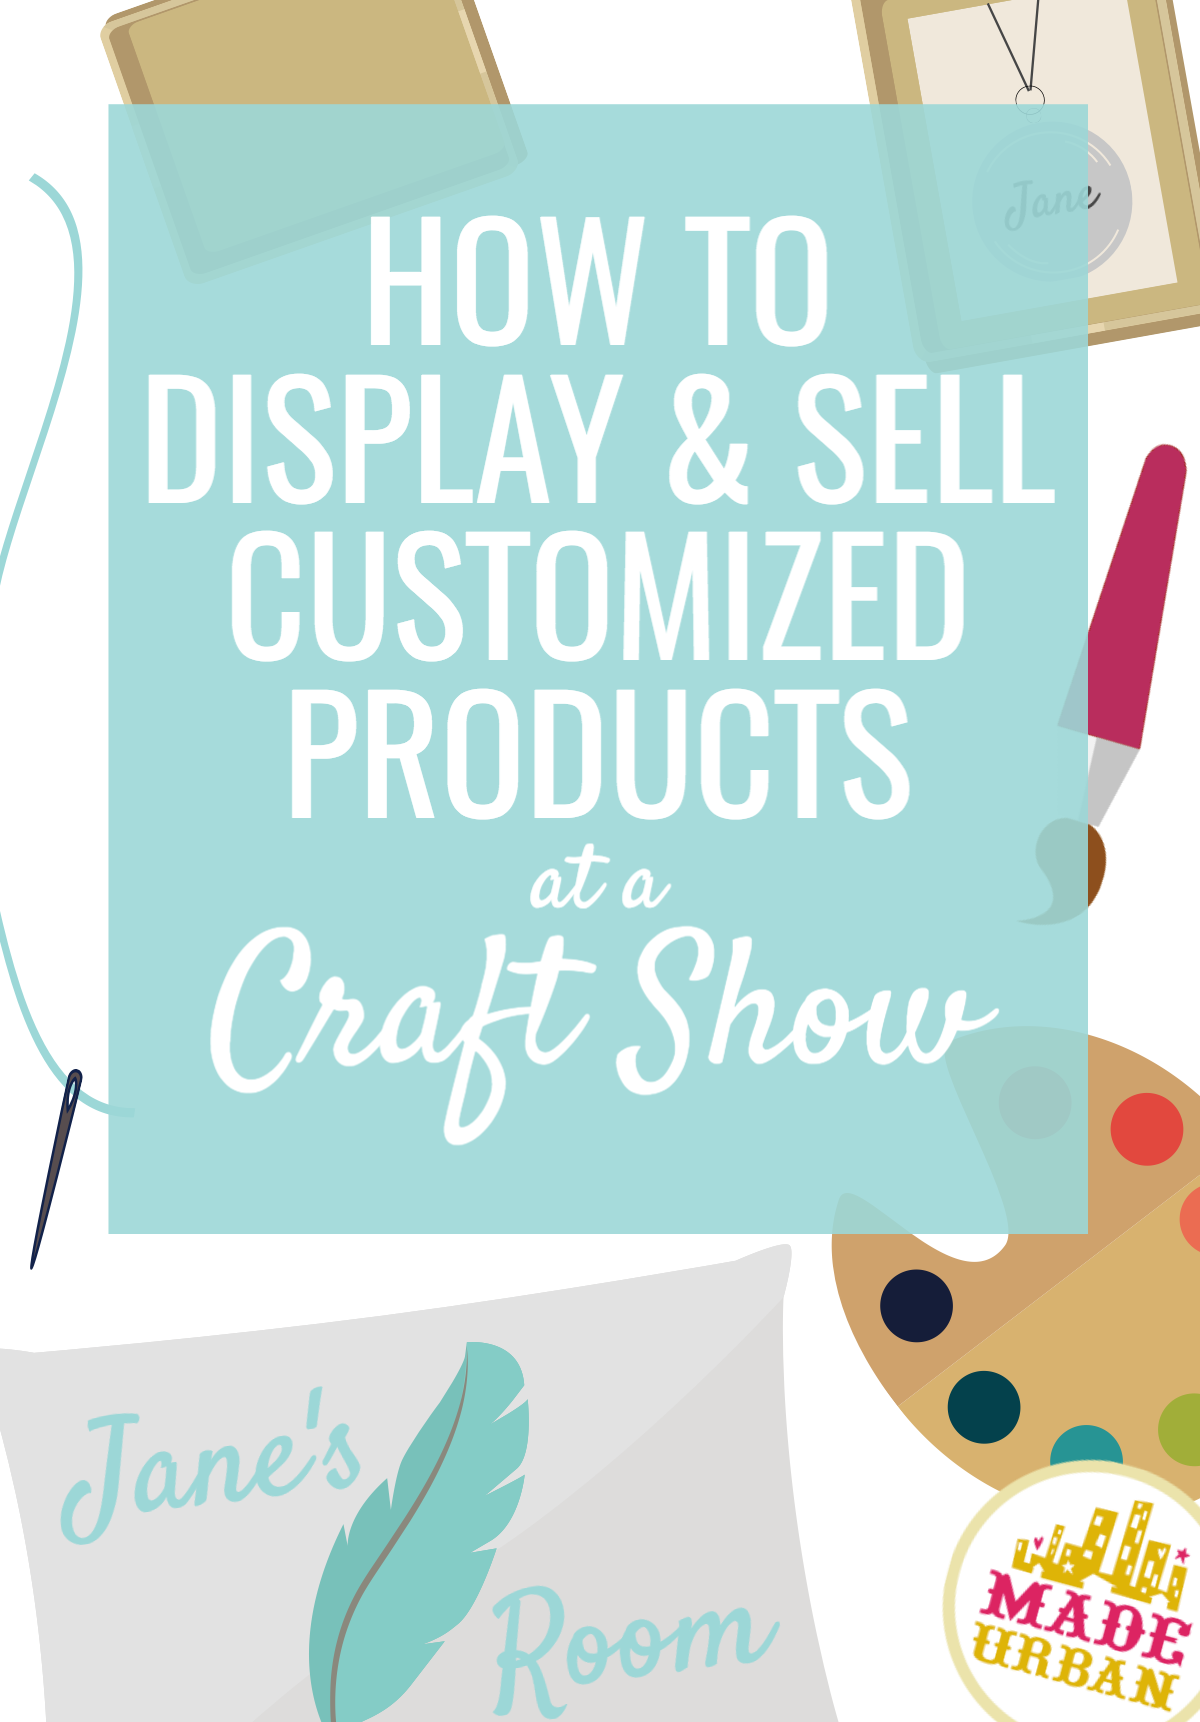 How do you create an attractive display & sell products at a craft show when they're customized after purchase. I'll show you exactly how in this article.